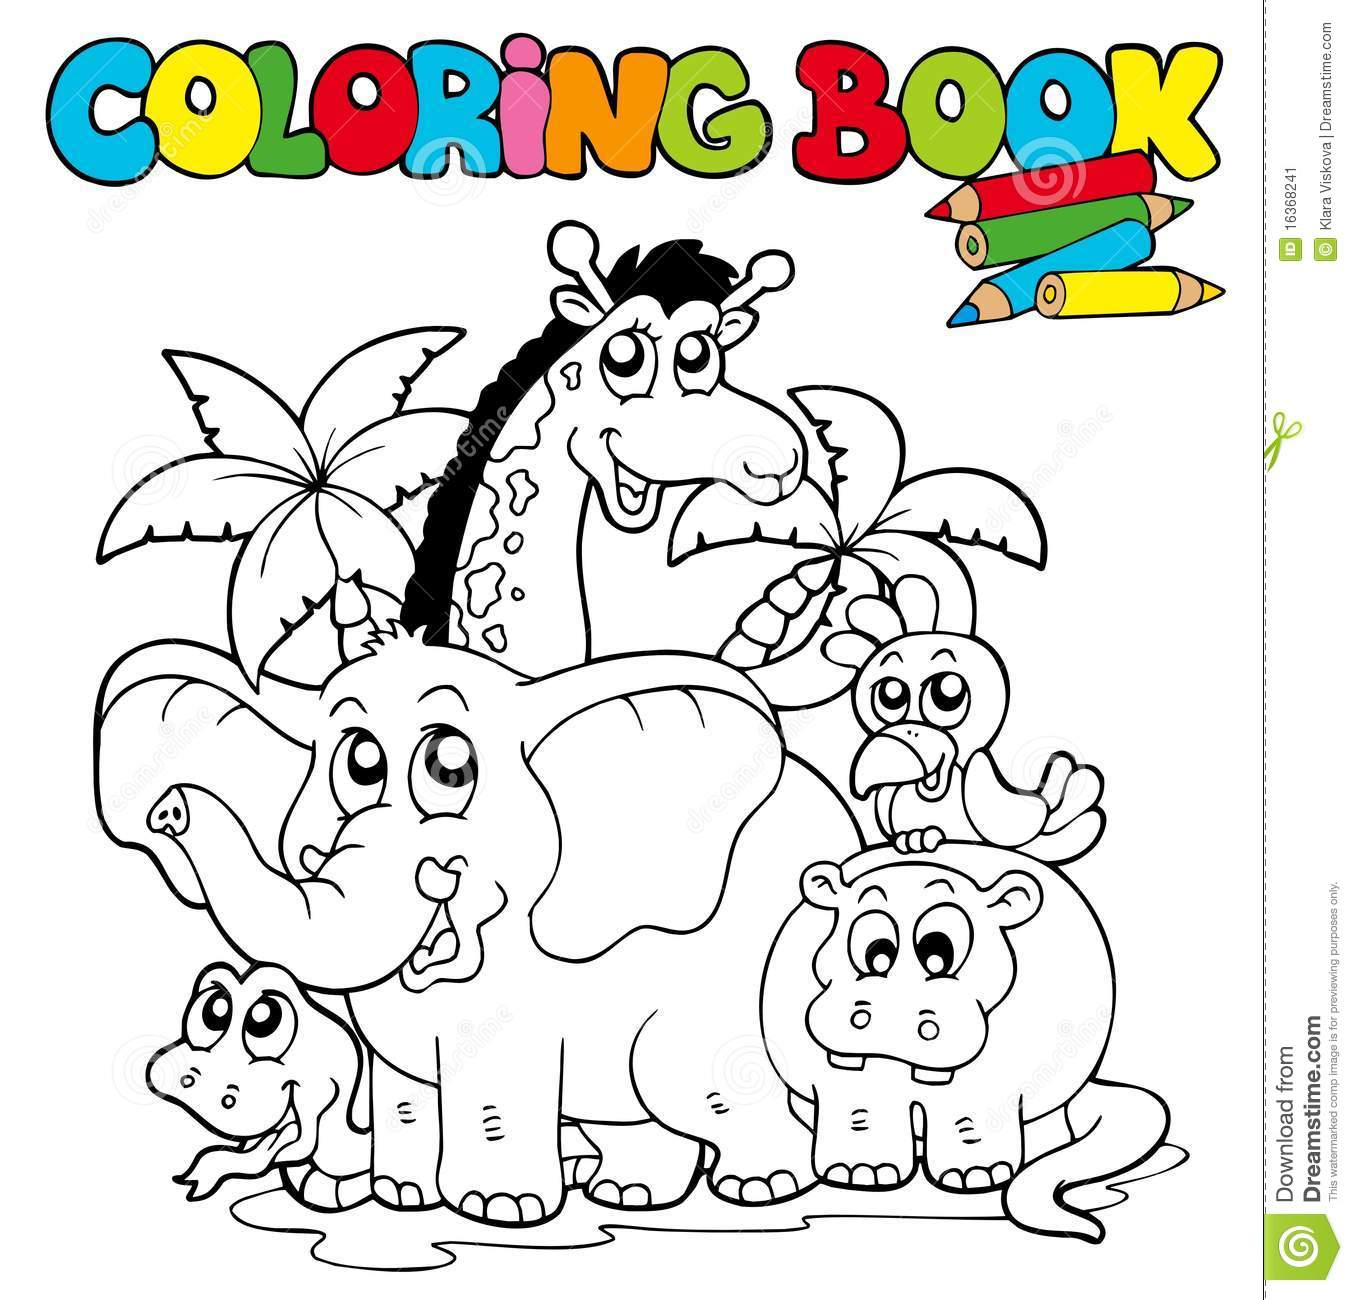 More similar stock images of ` Coloring book with cute animals 1 ...